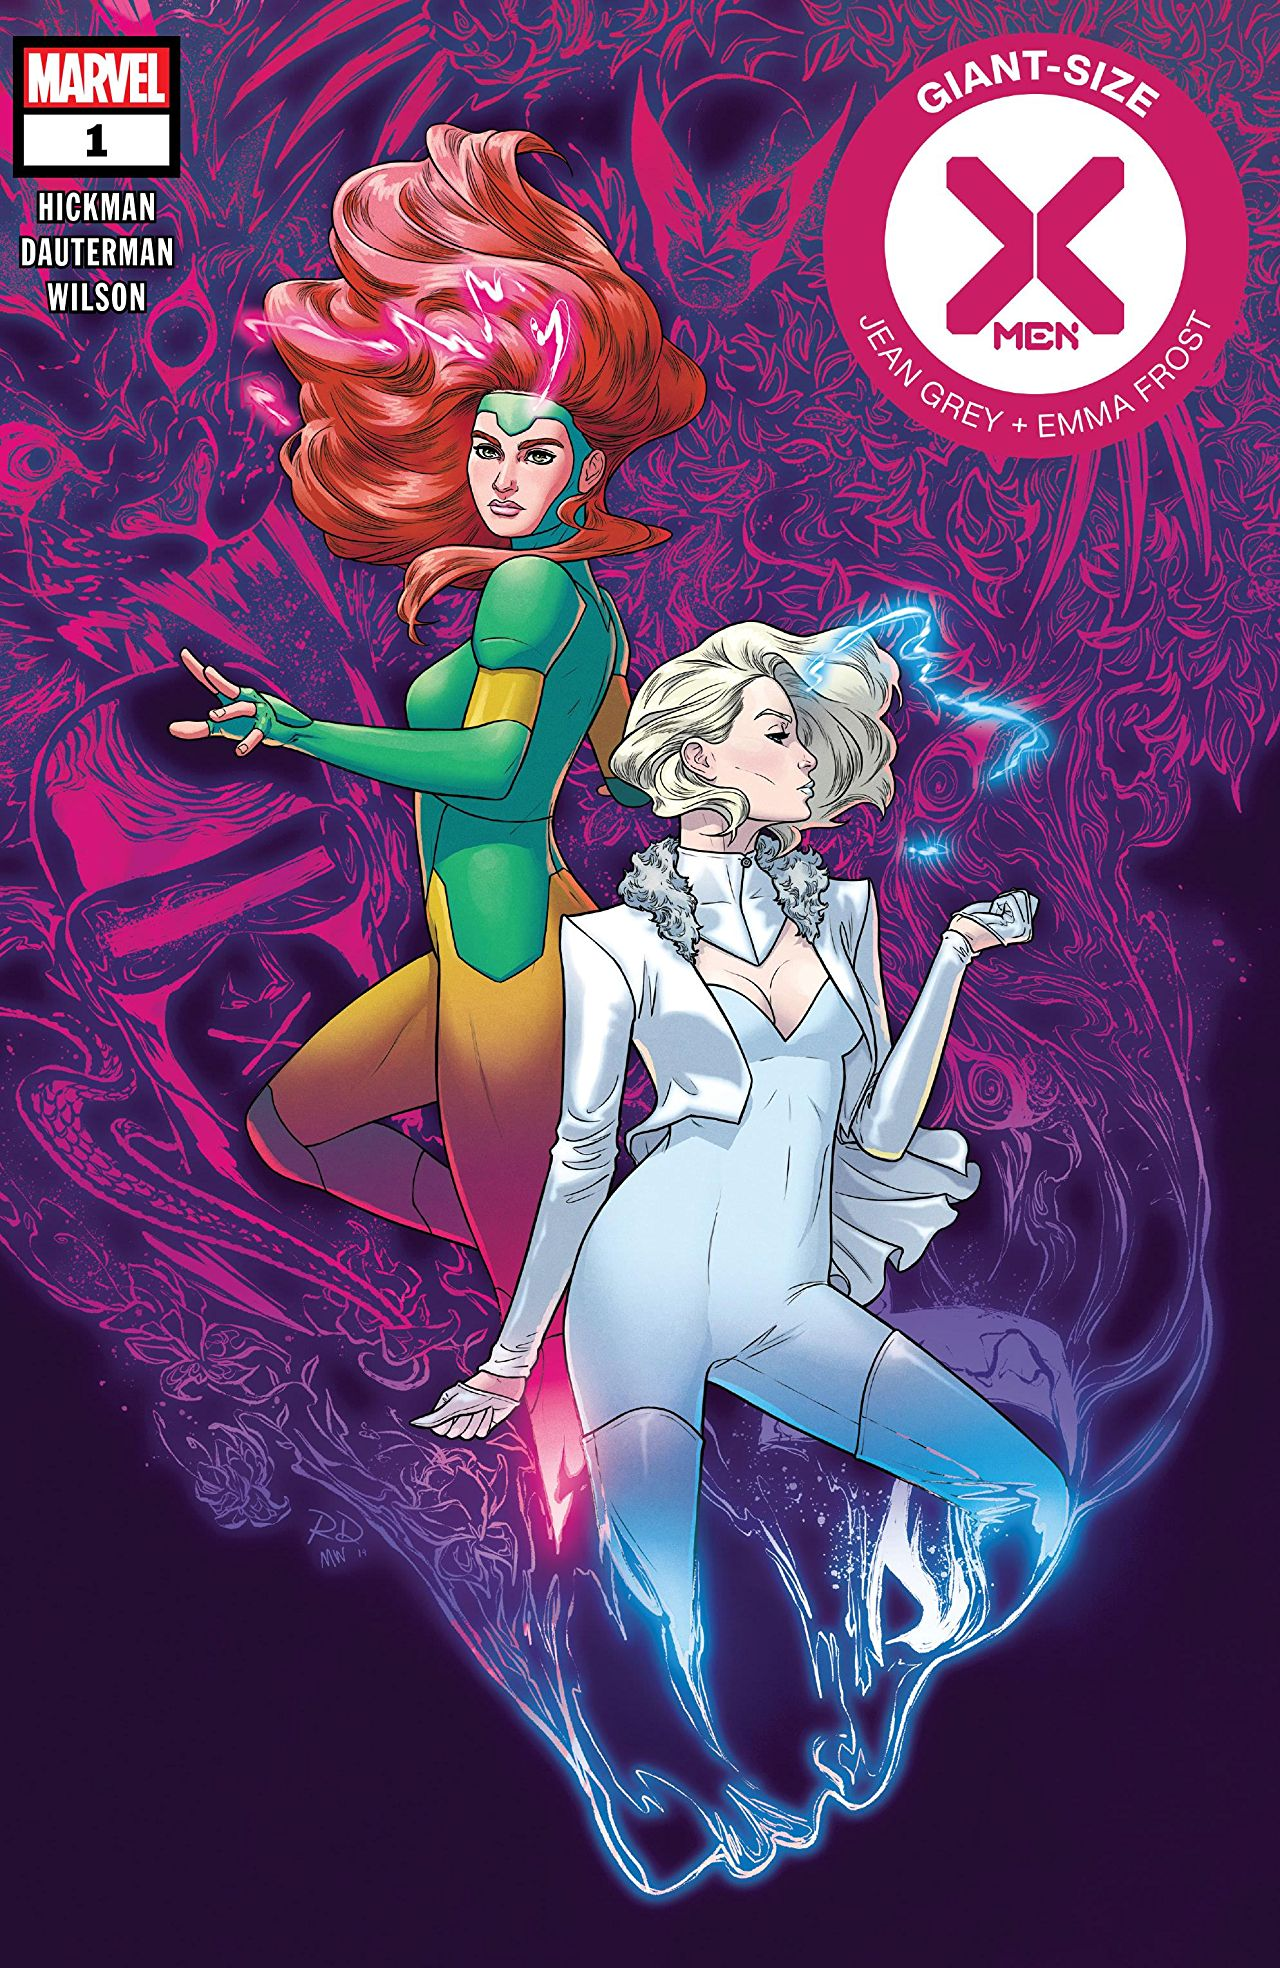 Giant-Size X-Men: Jean Grey and Emma Frost Vol.1